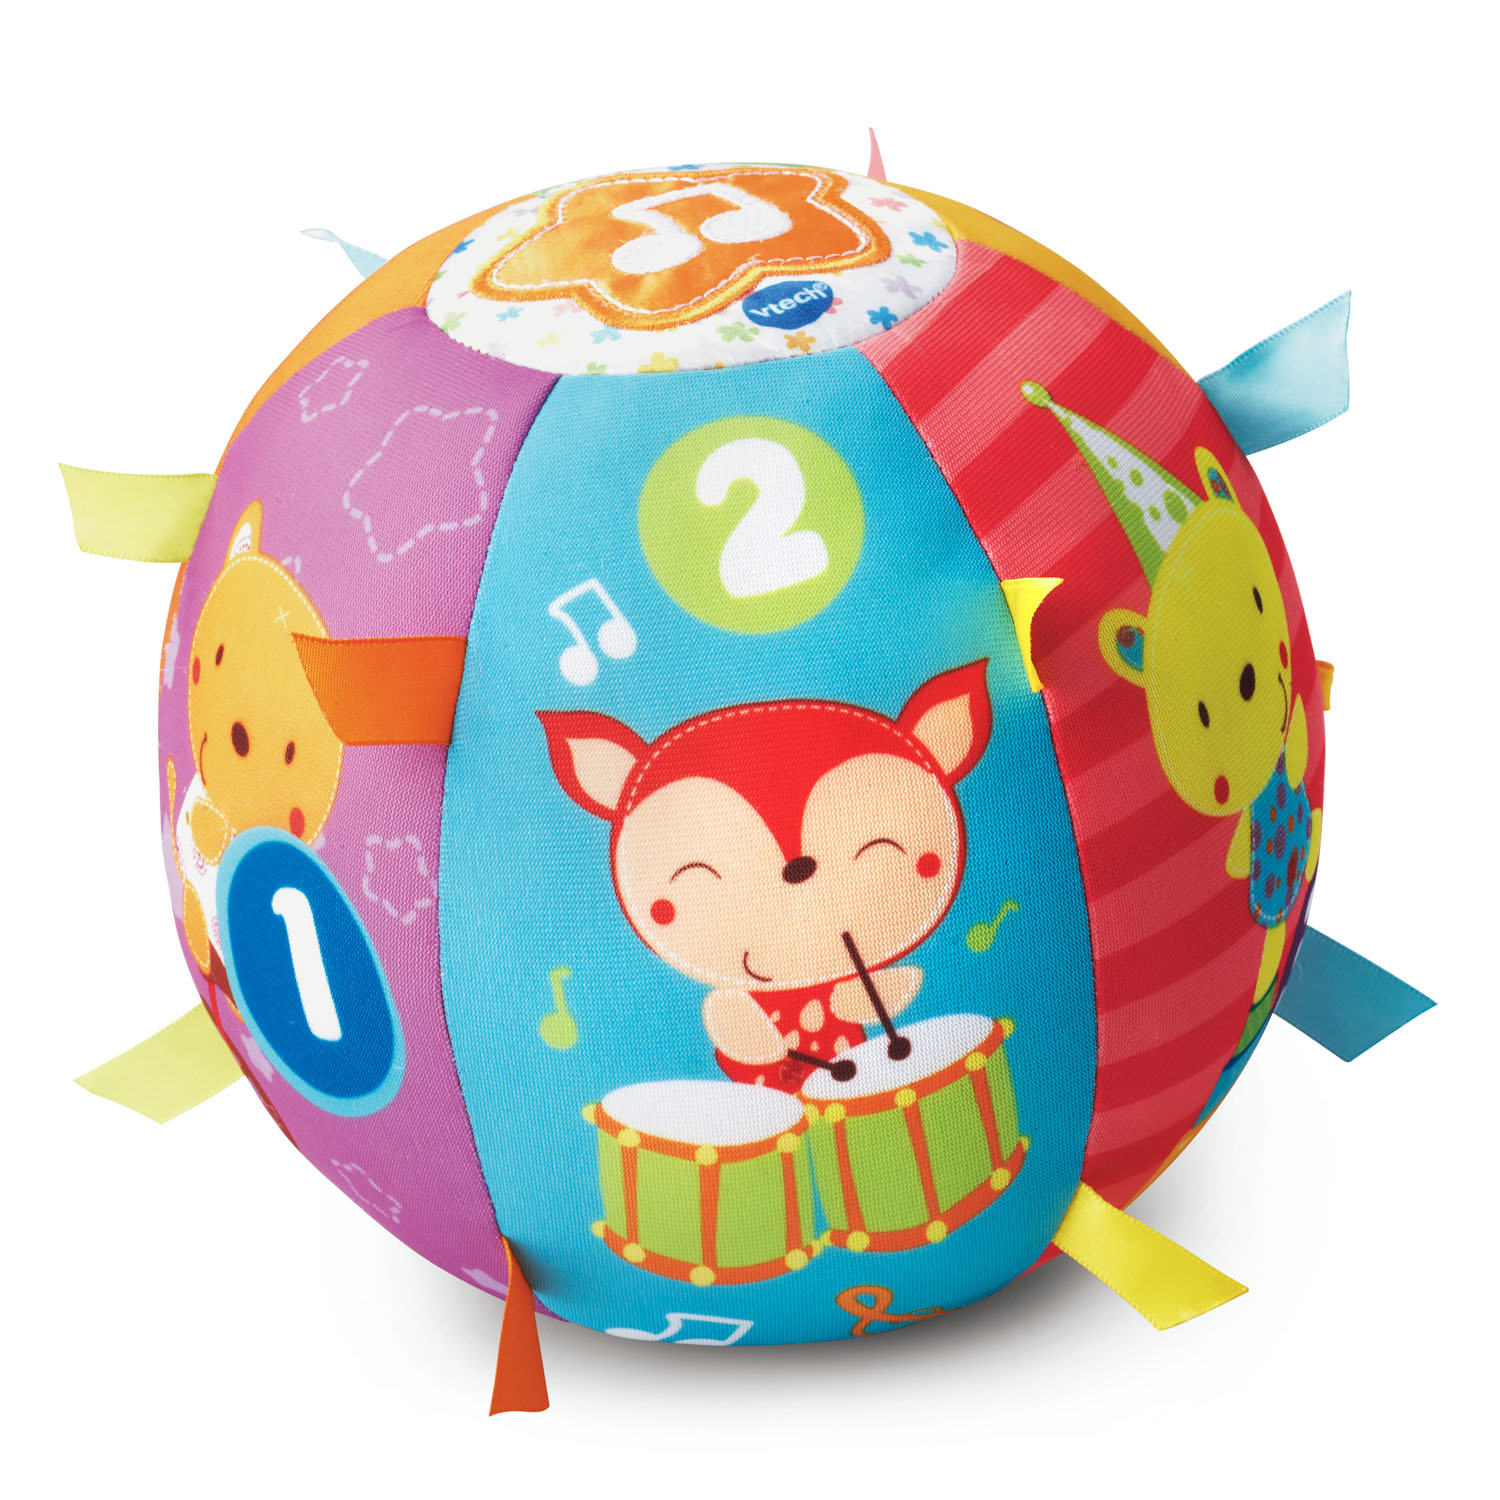 VTech® Lil' Critters Roll & Discover Ball™